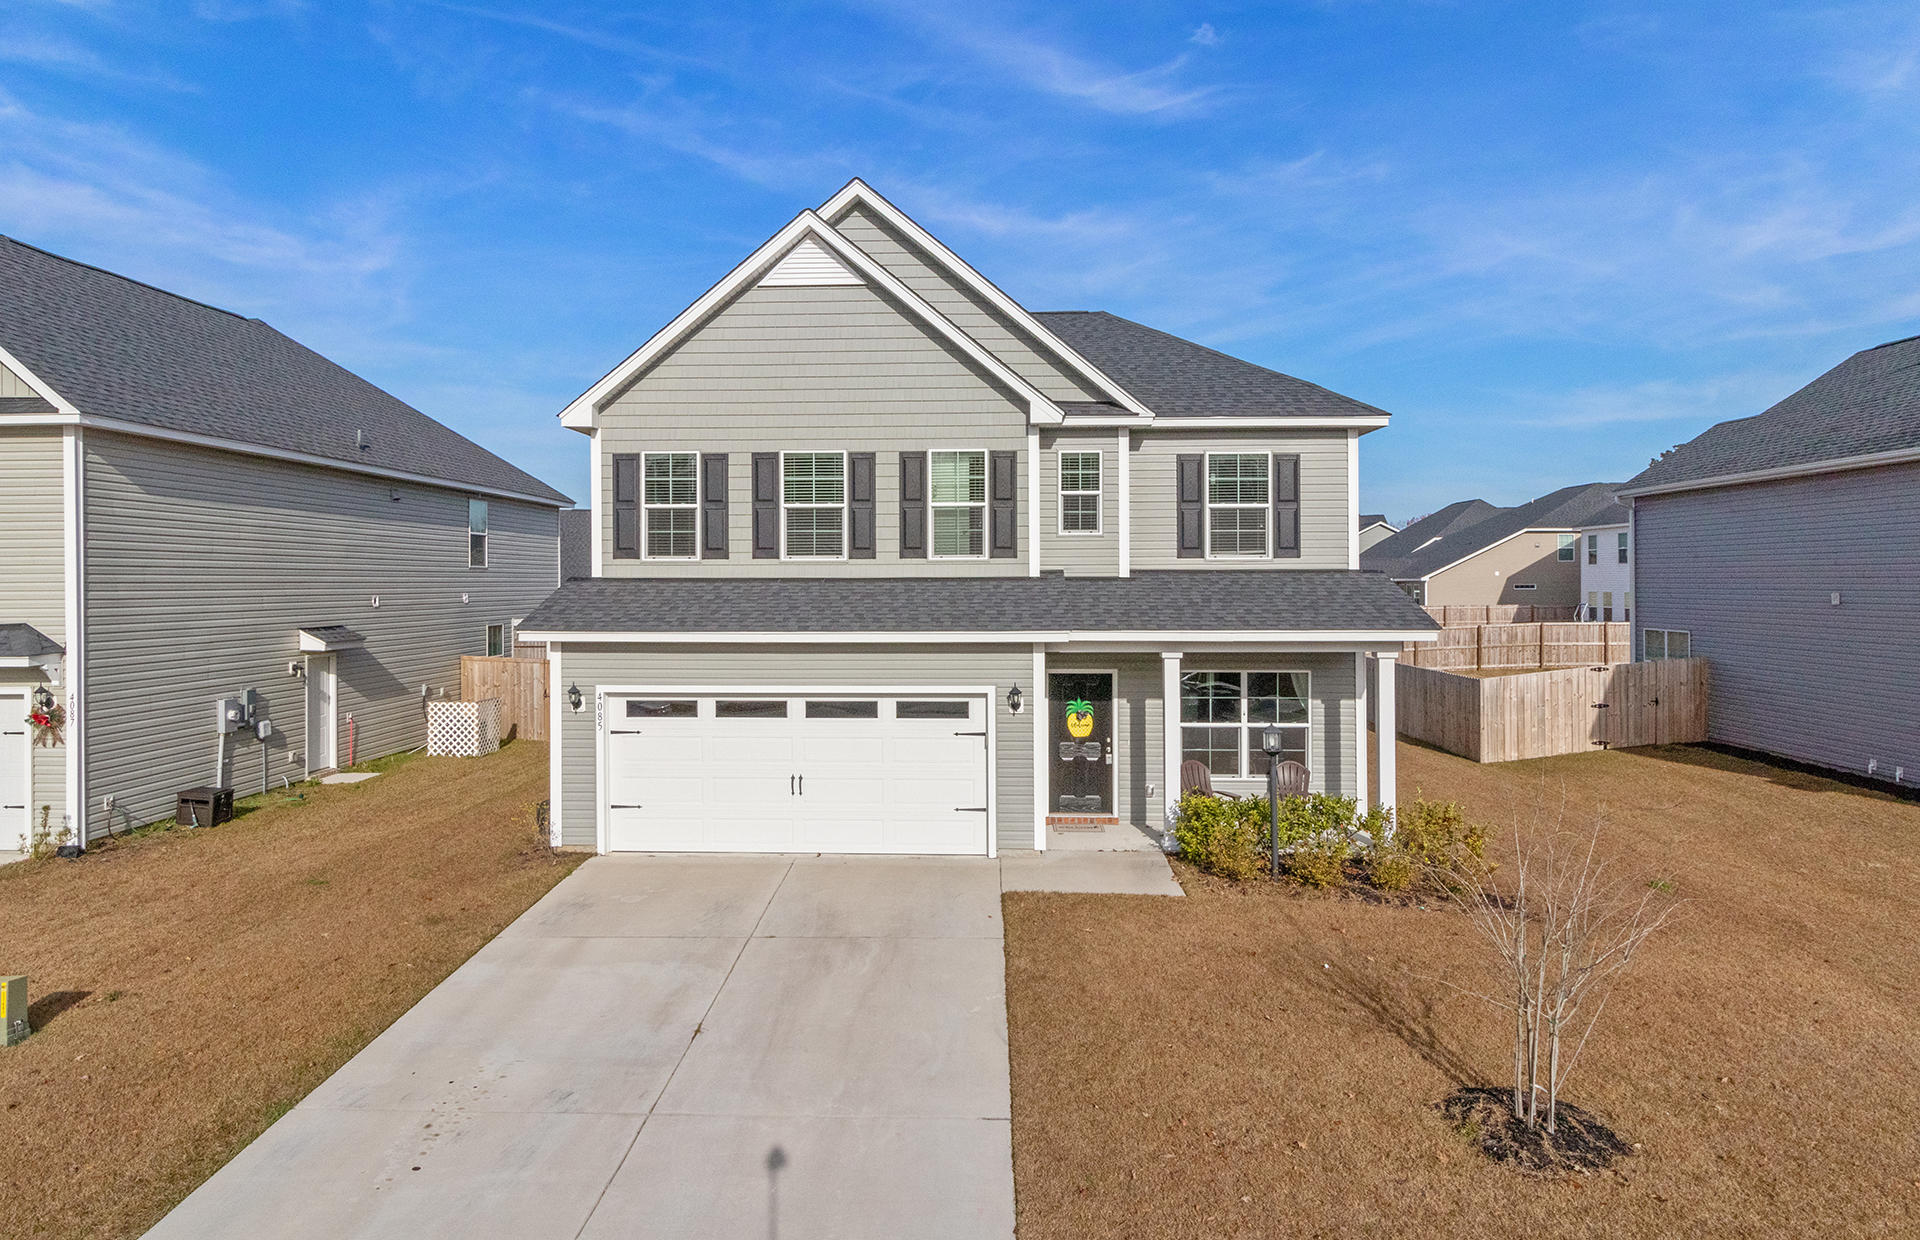 4085 Exploration Road Ladson, Sc 29456